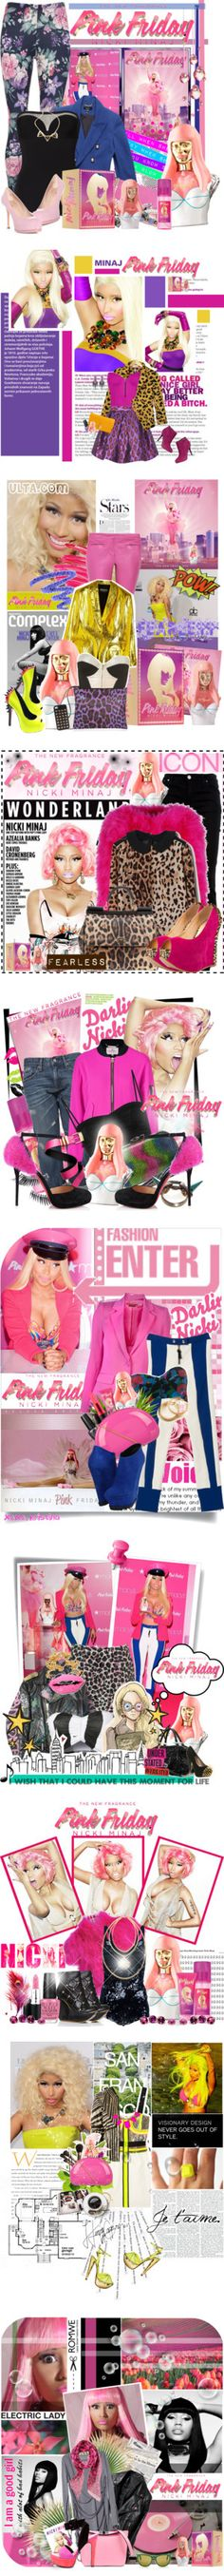 """""""Totally Fearless with Pink Friday Nicki Minaj"""" by bellerouge ❤ liked on Polyvore"""